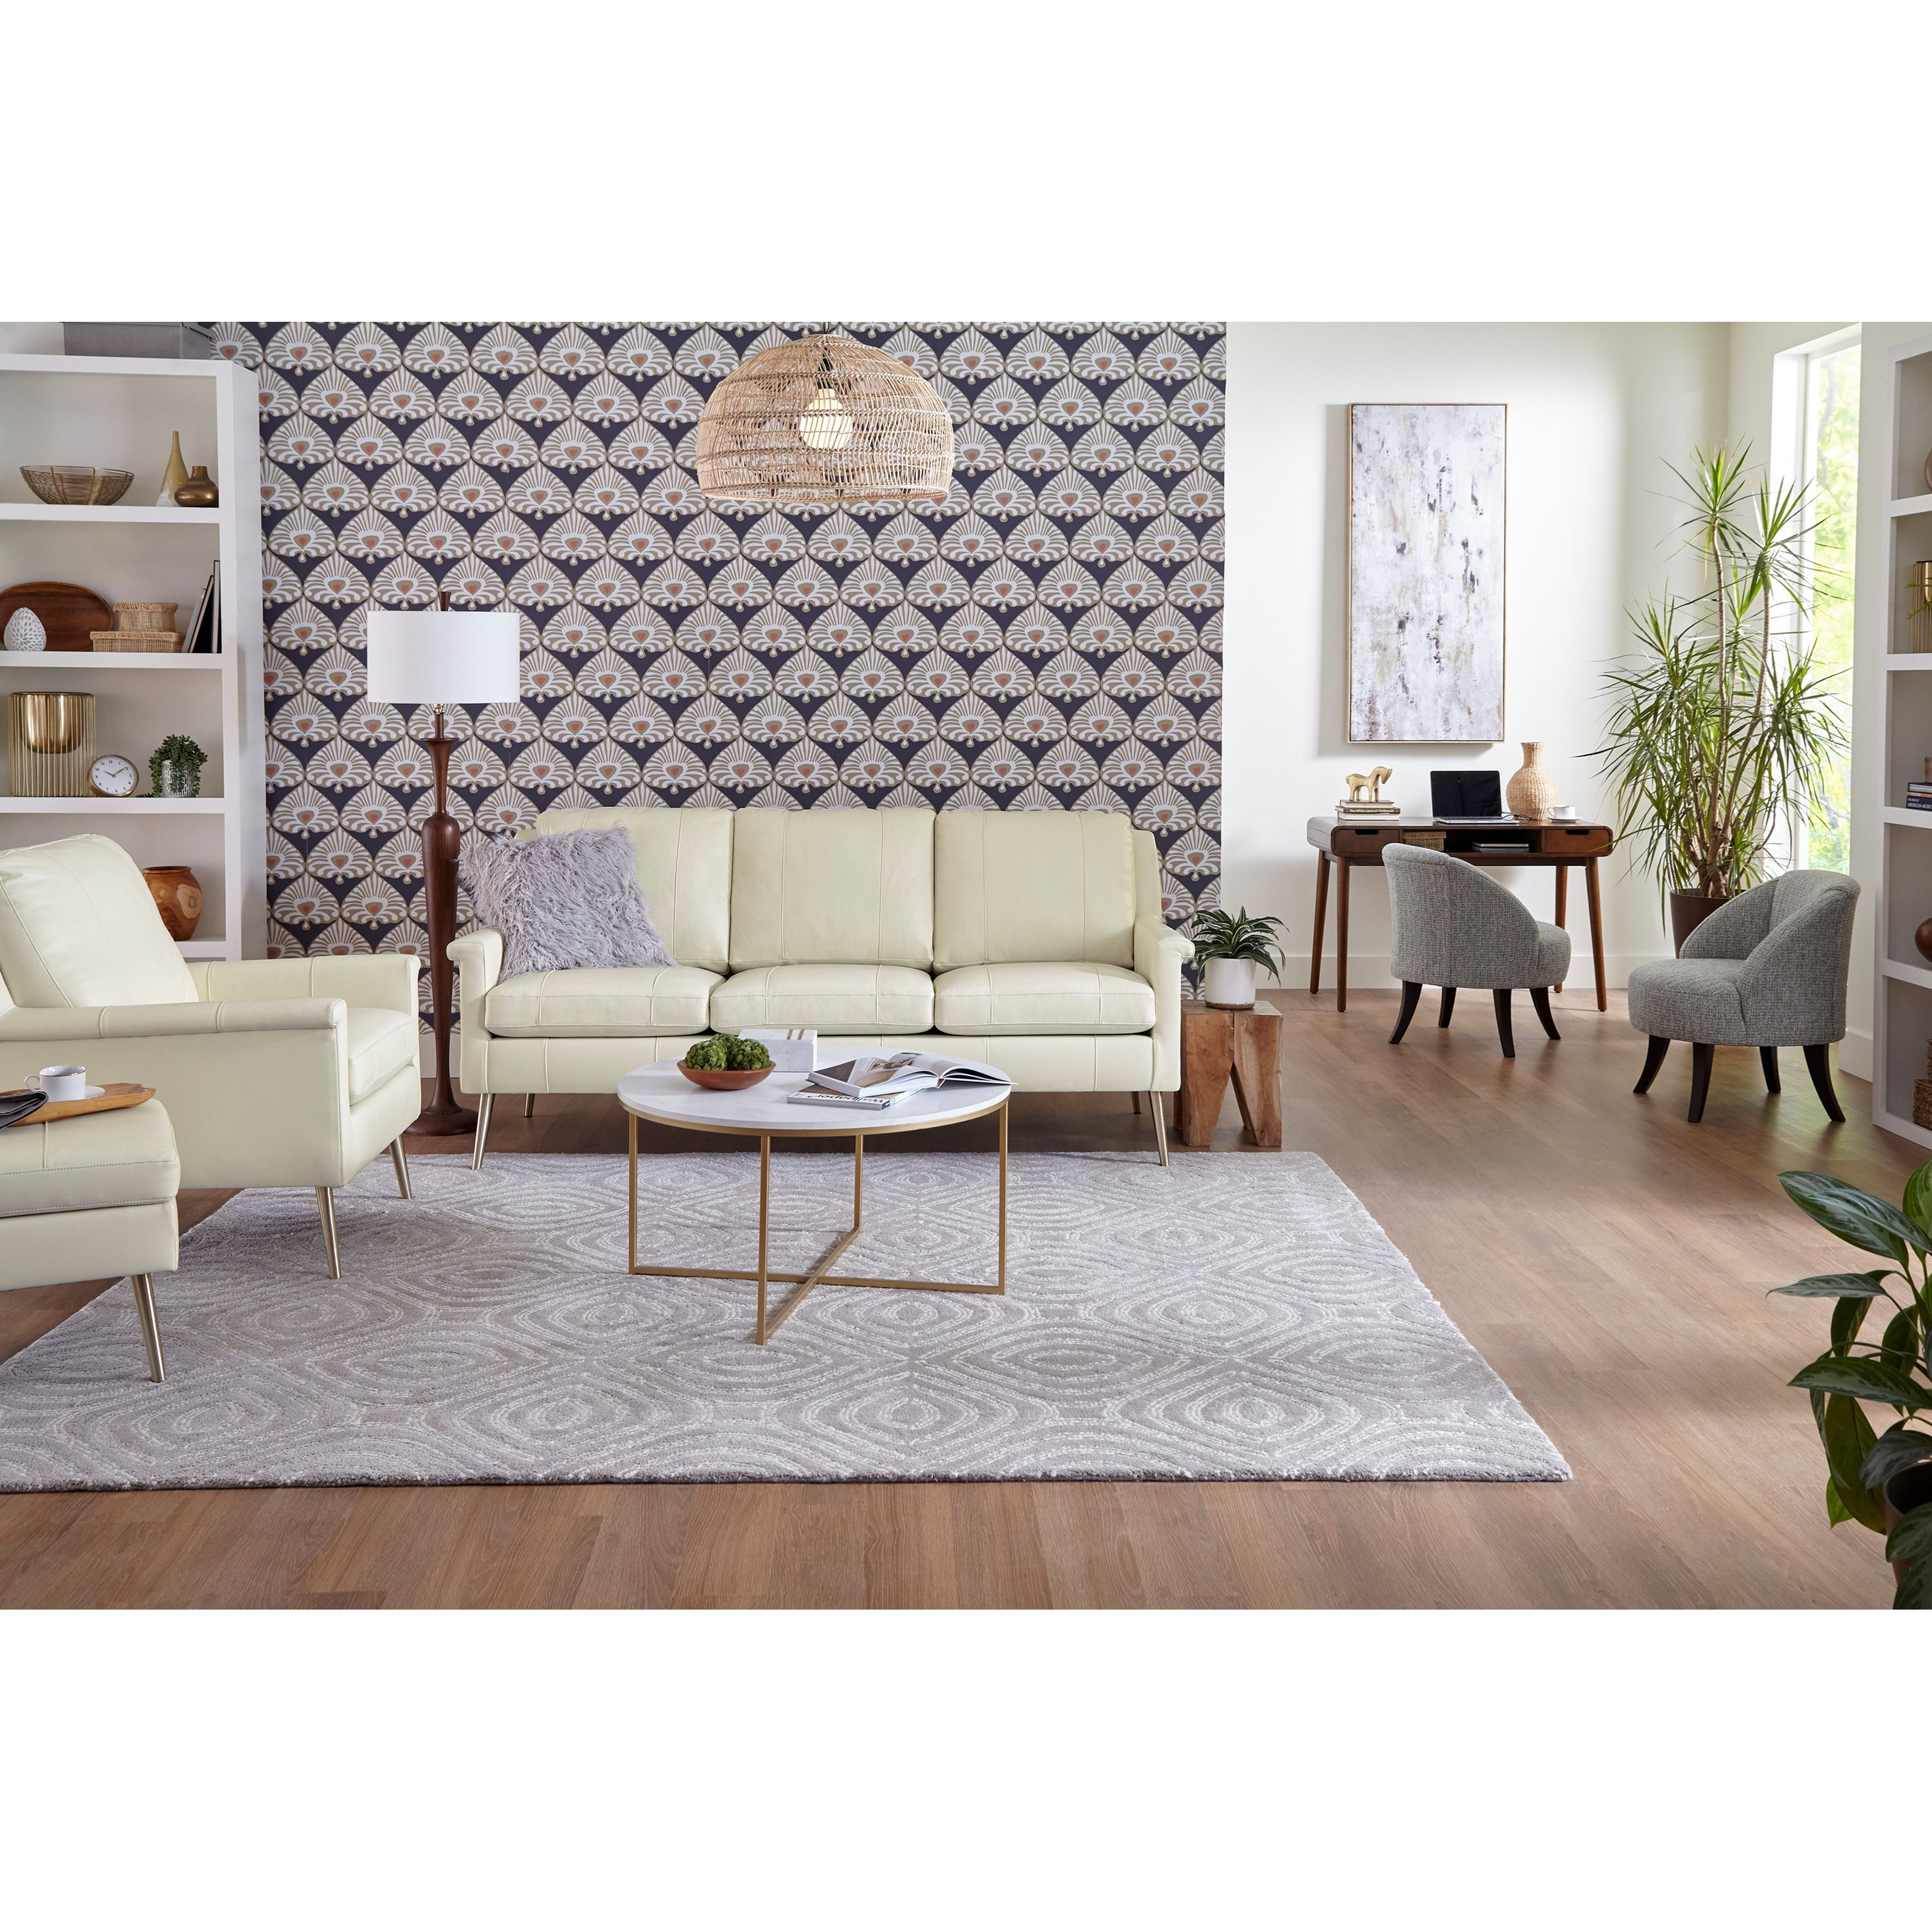 Dacey Living Room Group by Best Home Furnishings at Baer's Furniture